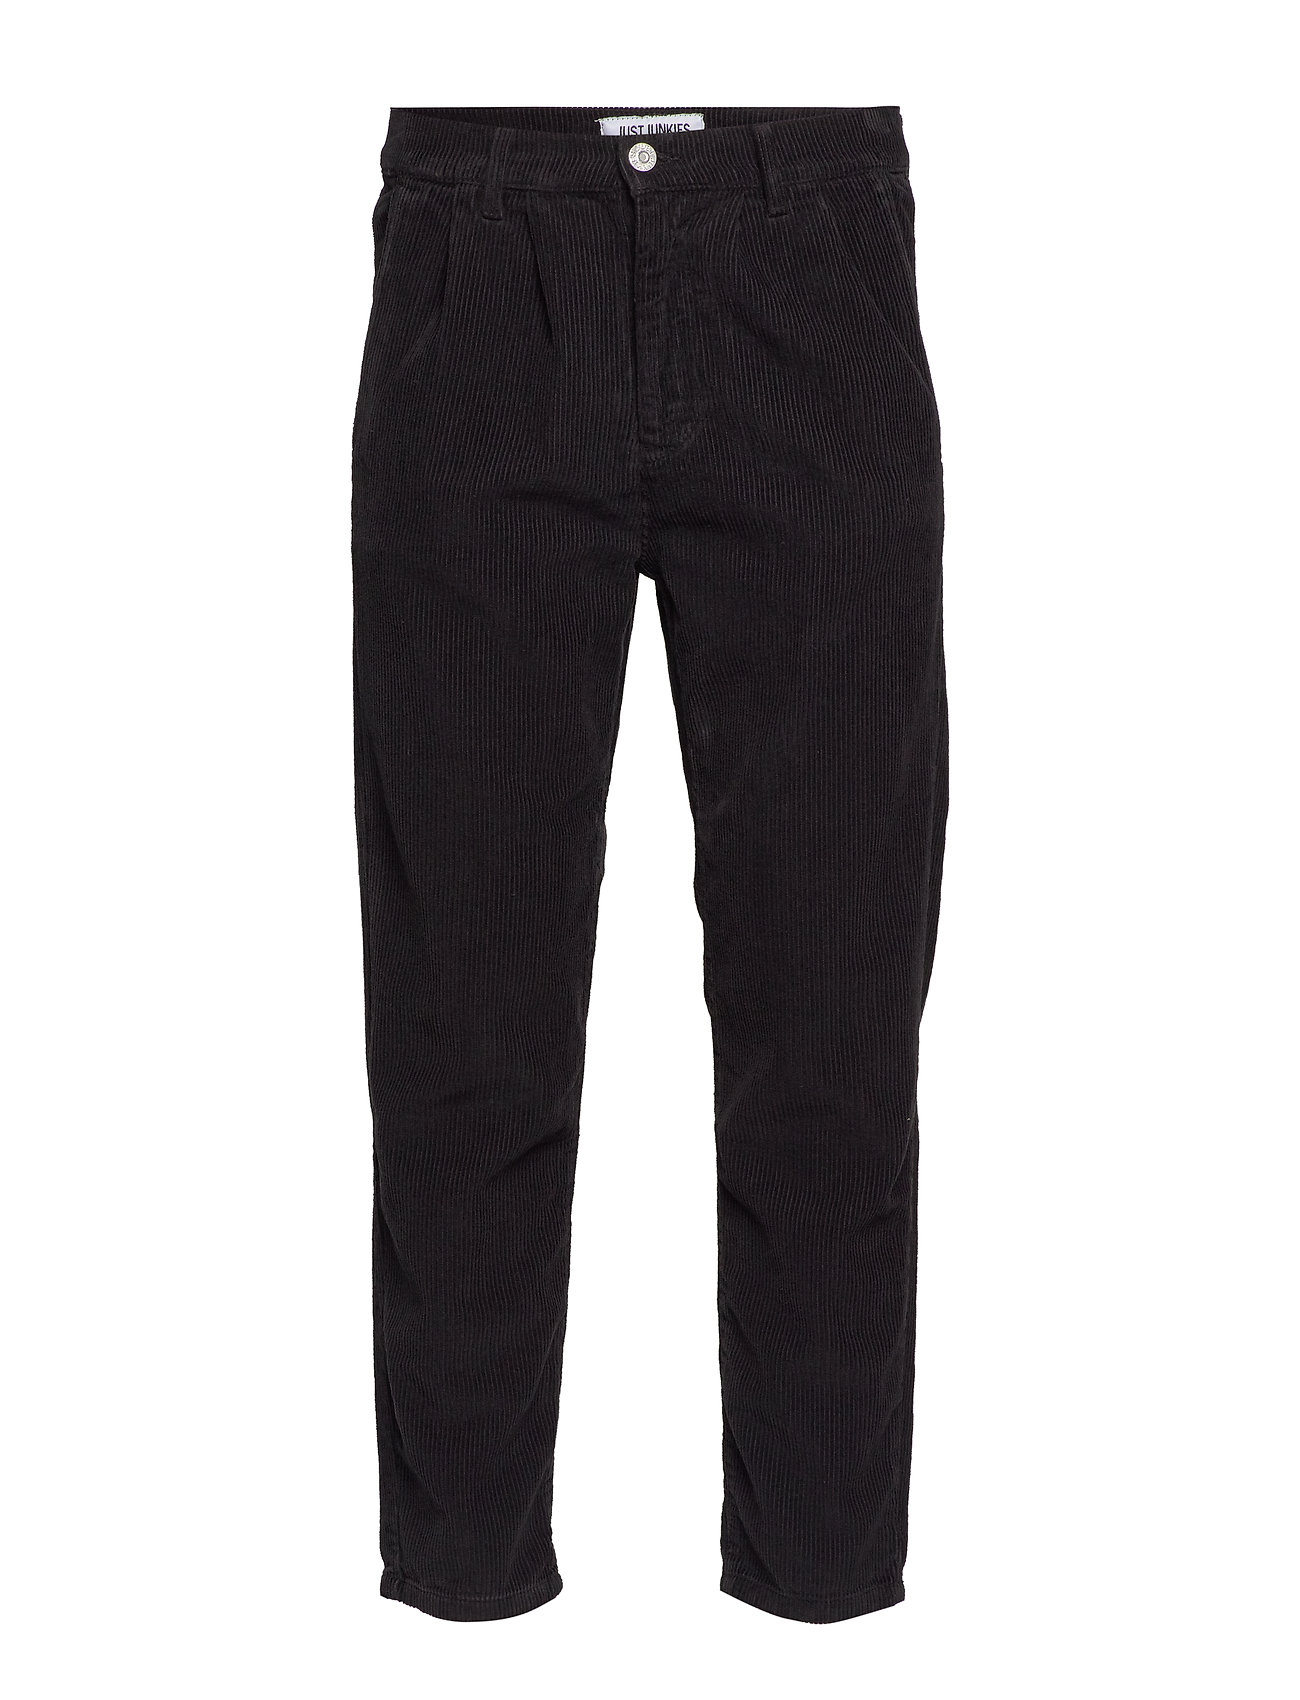 Just Junkies Box corduroy - BLACK